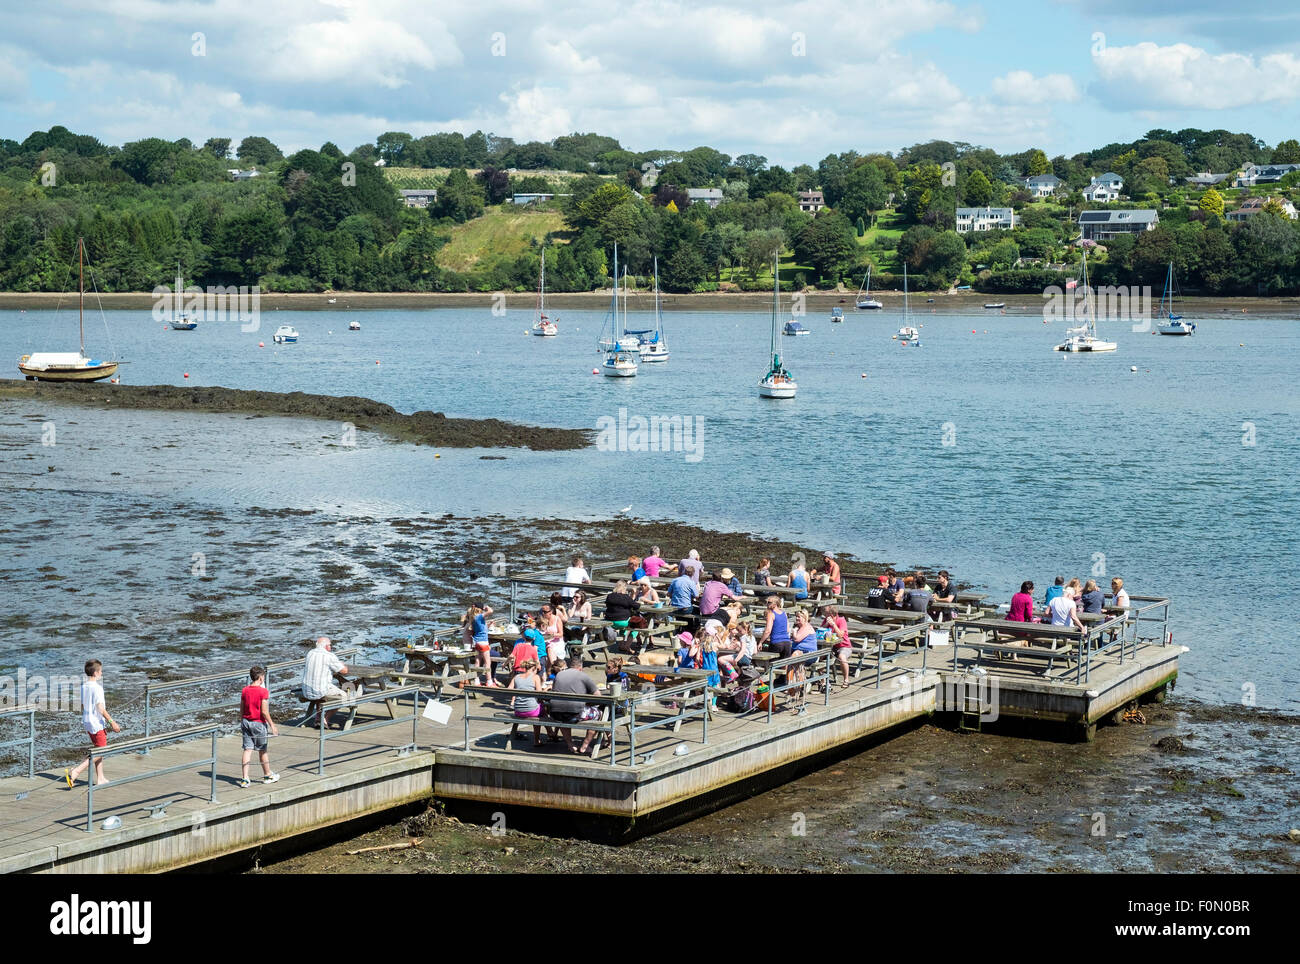 People dining on the pontoon belonging to the Pandora inn at Restronguet creek near falmouth in Cornwall, Uk - Stock Image